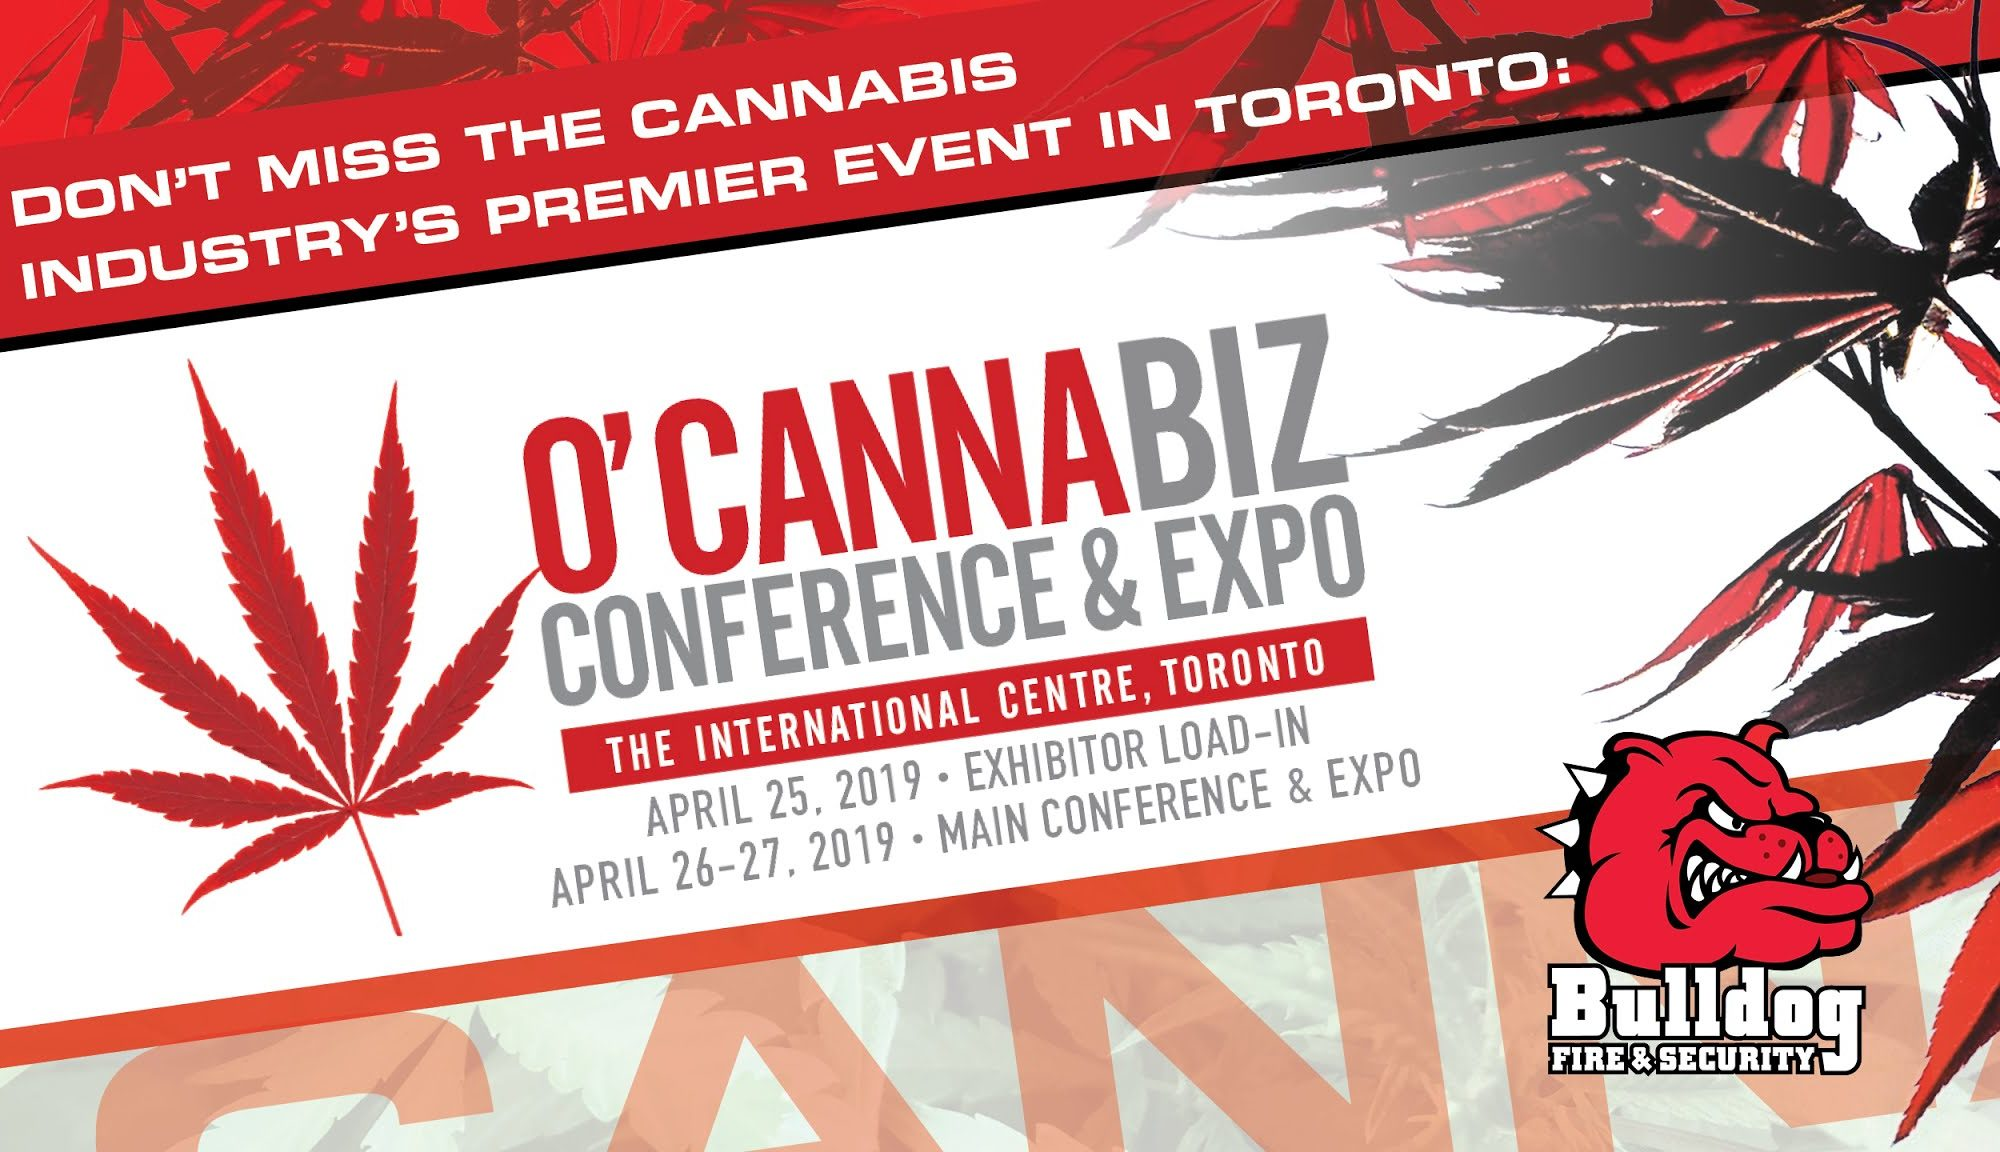 image of ocannabiz conference and expo banner